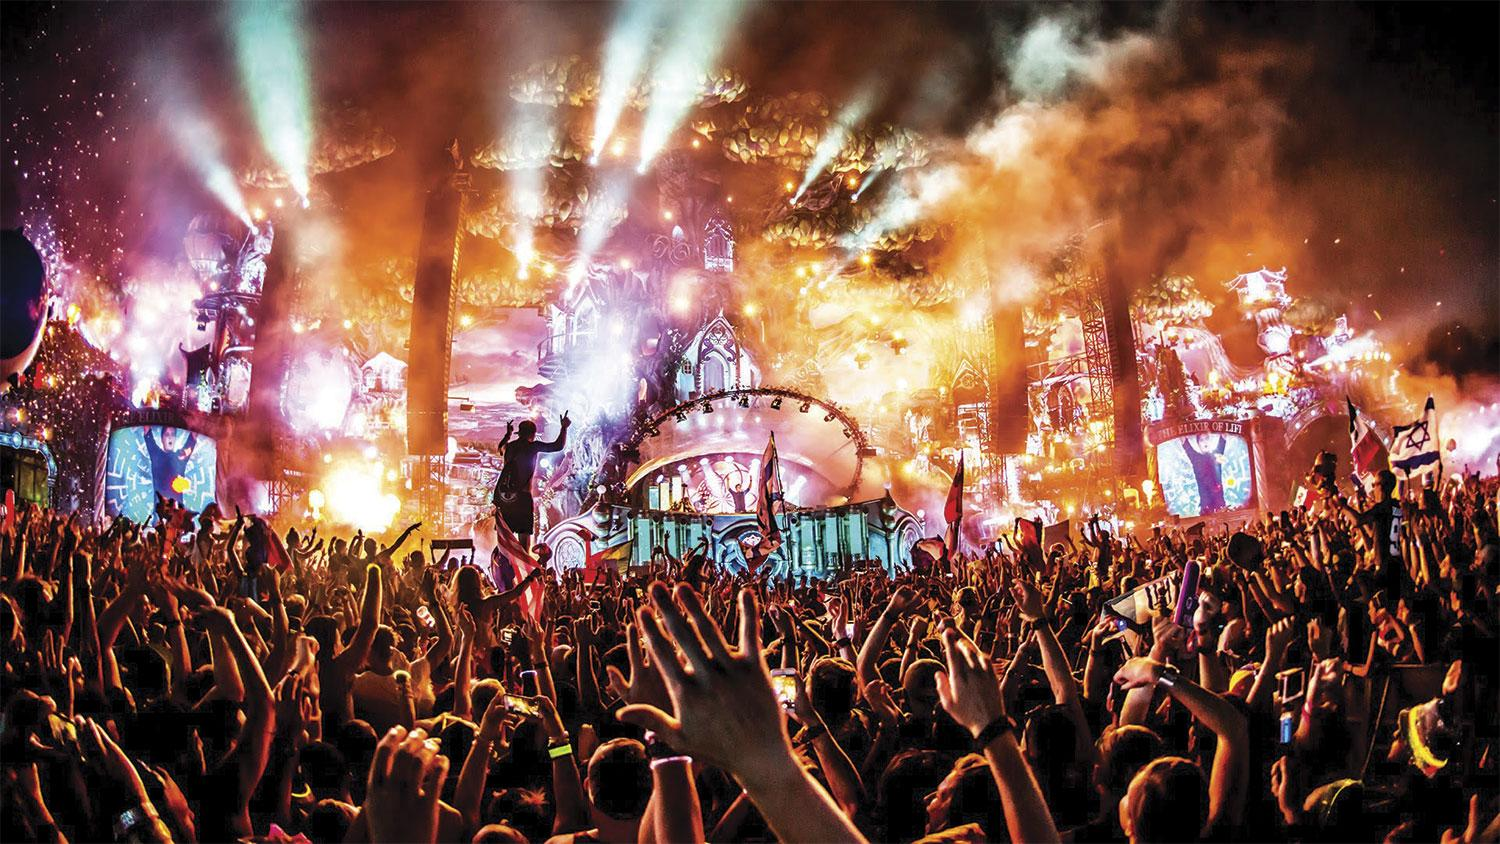 People partying at one of the Tomorrowland festival stages